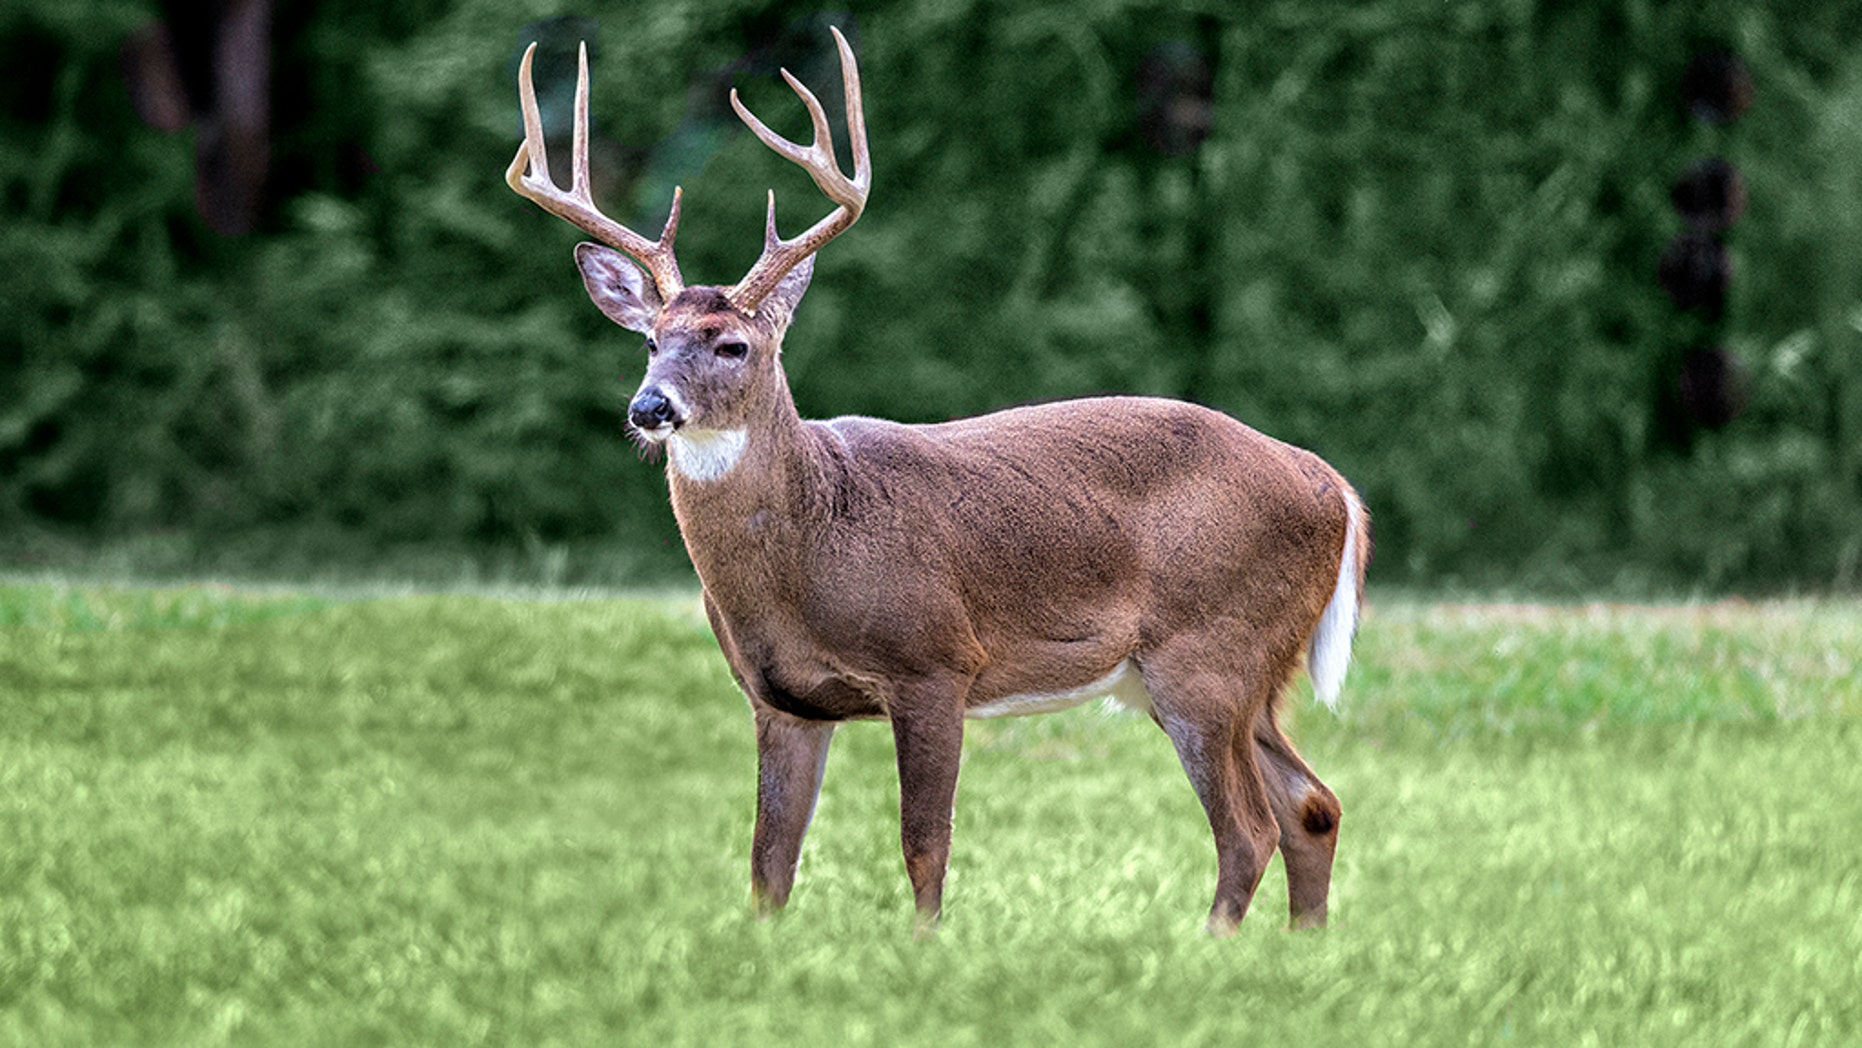 Deadly 'zombie' deer disease could eventually spread to humans, experts warn